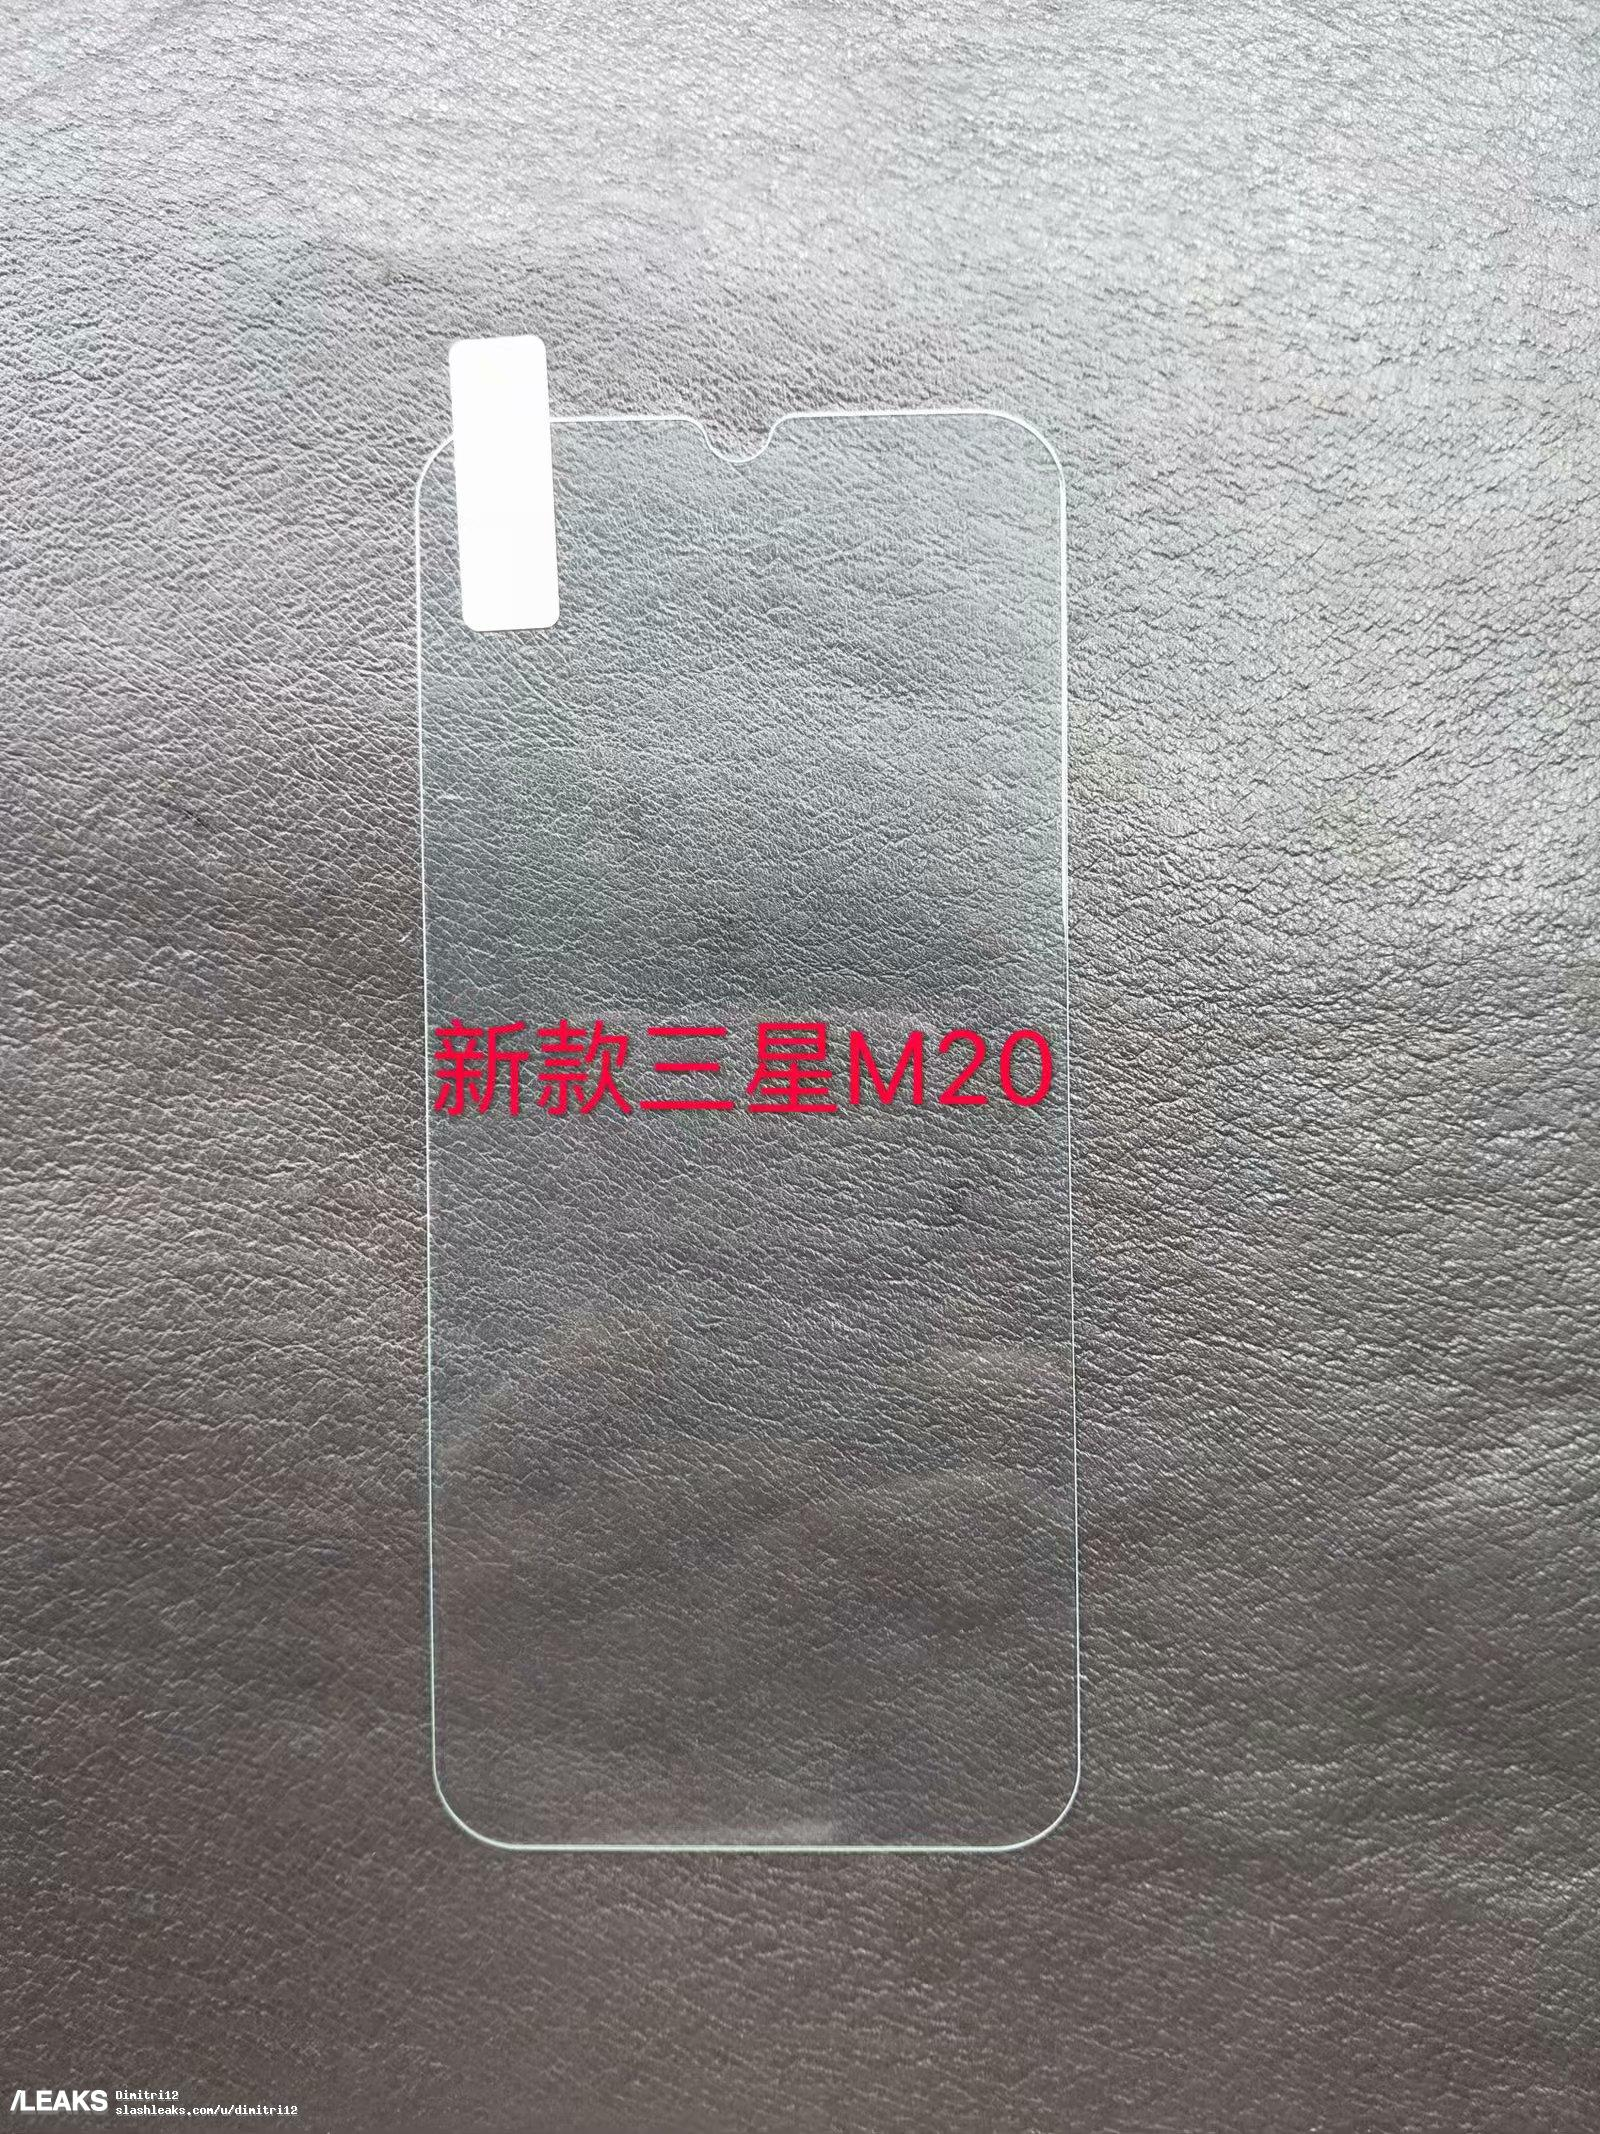 img Samsung Galaxy M20 screen protector leaks out